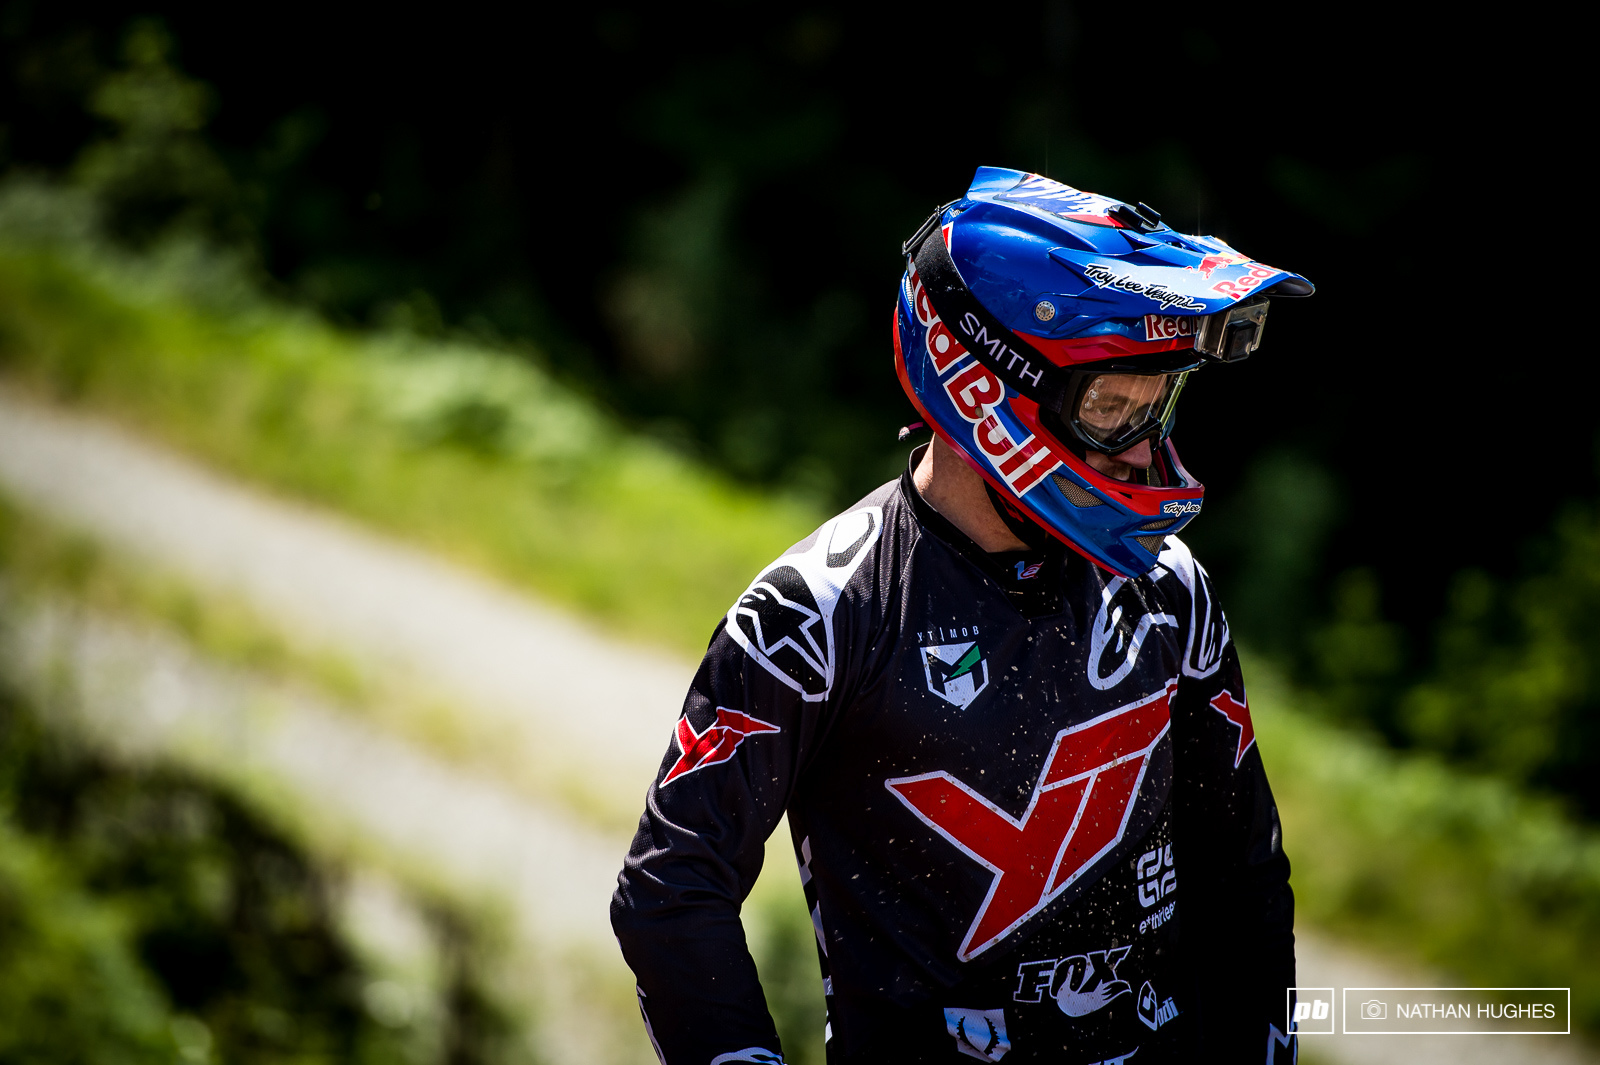 Aaron Gwin on the lookout for golden line as the lesser numbers try their best in the roots. And everyone else is a lesser number. What kind of Gwin special could be on the cards this year